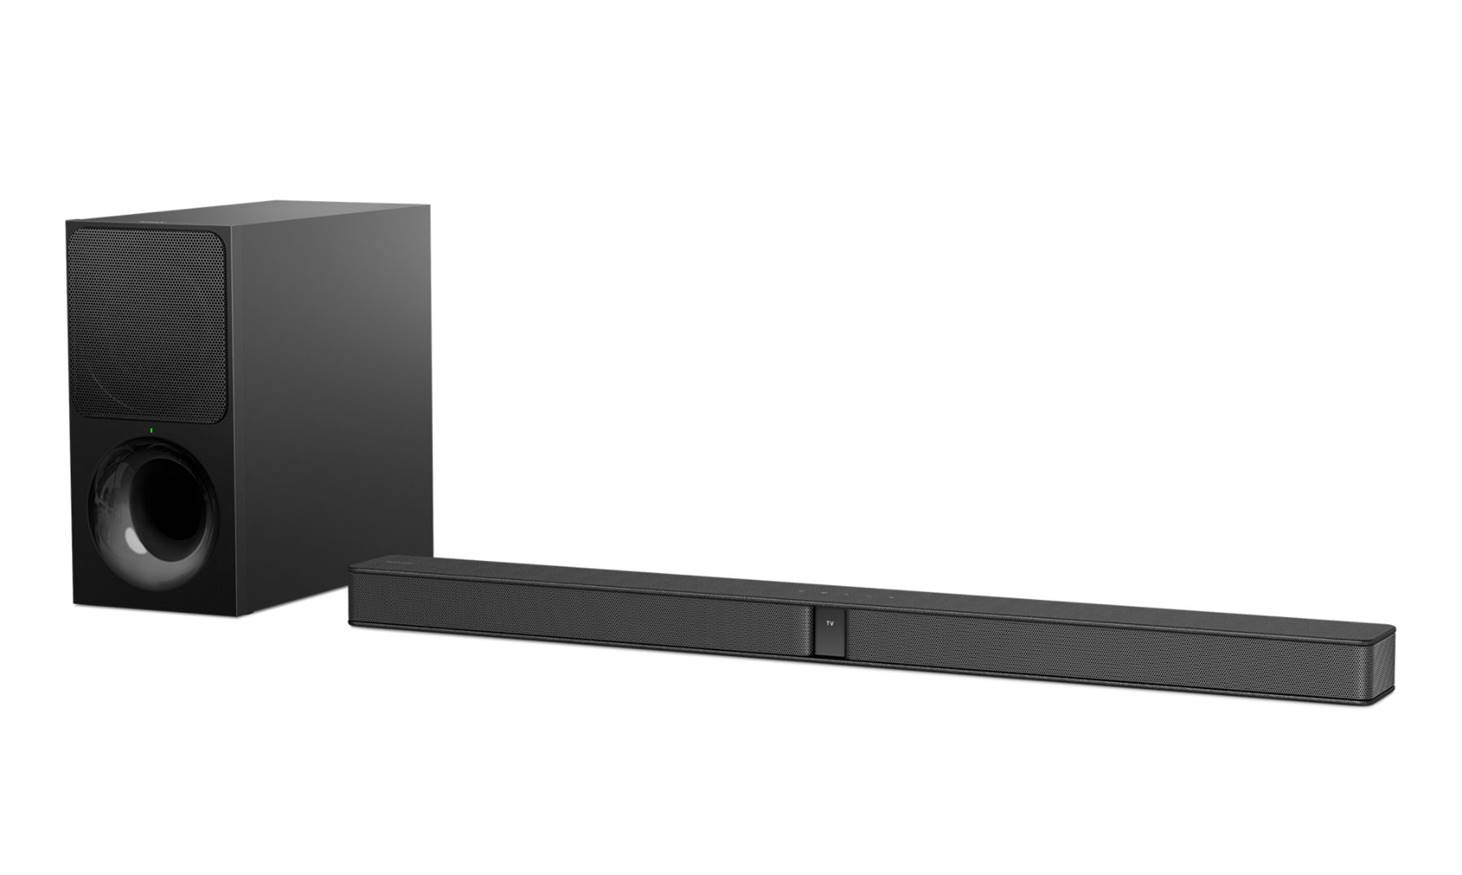 Sony CT290 Budget Soundbar